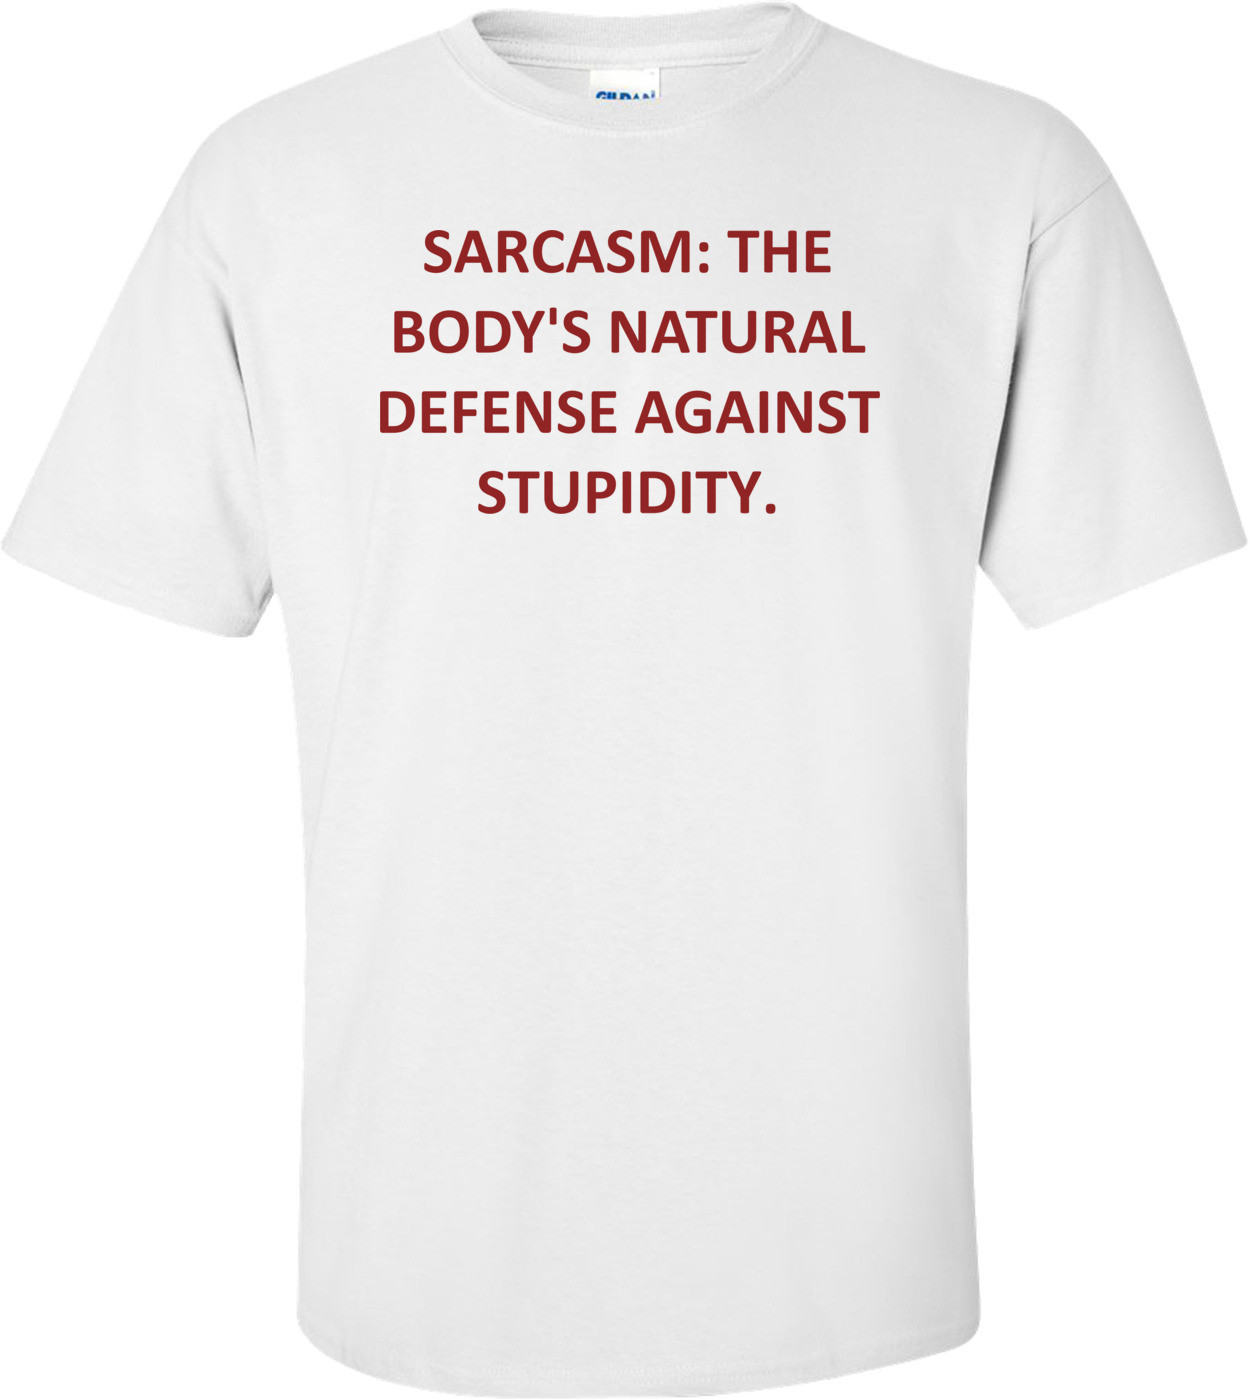 SARCASM: THE BODY'S NATURAL DEFENSE AGAINST STUPIDITY. Shirt